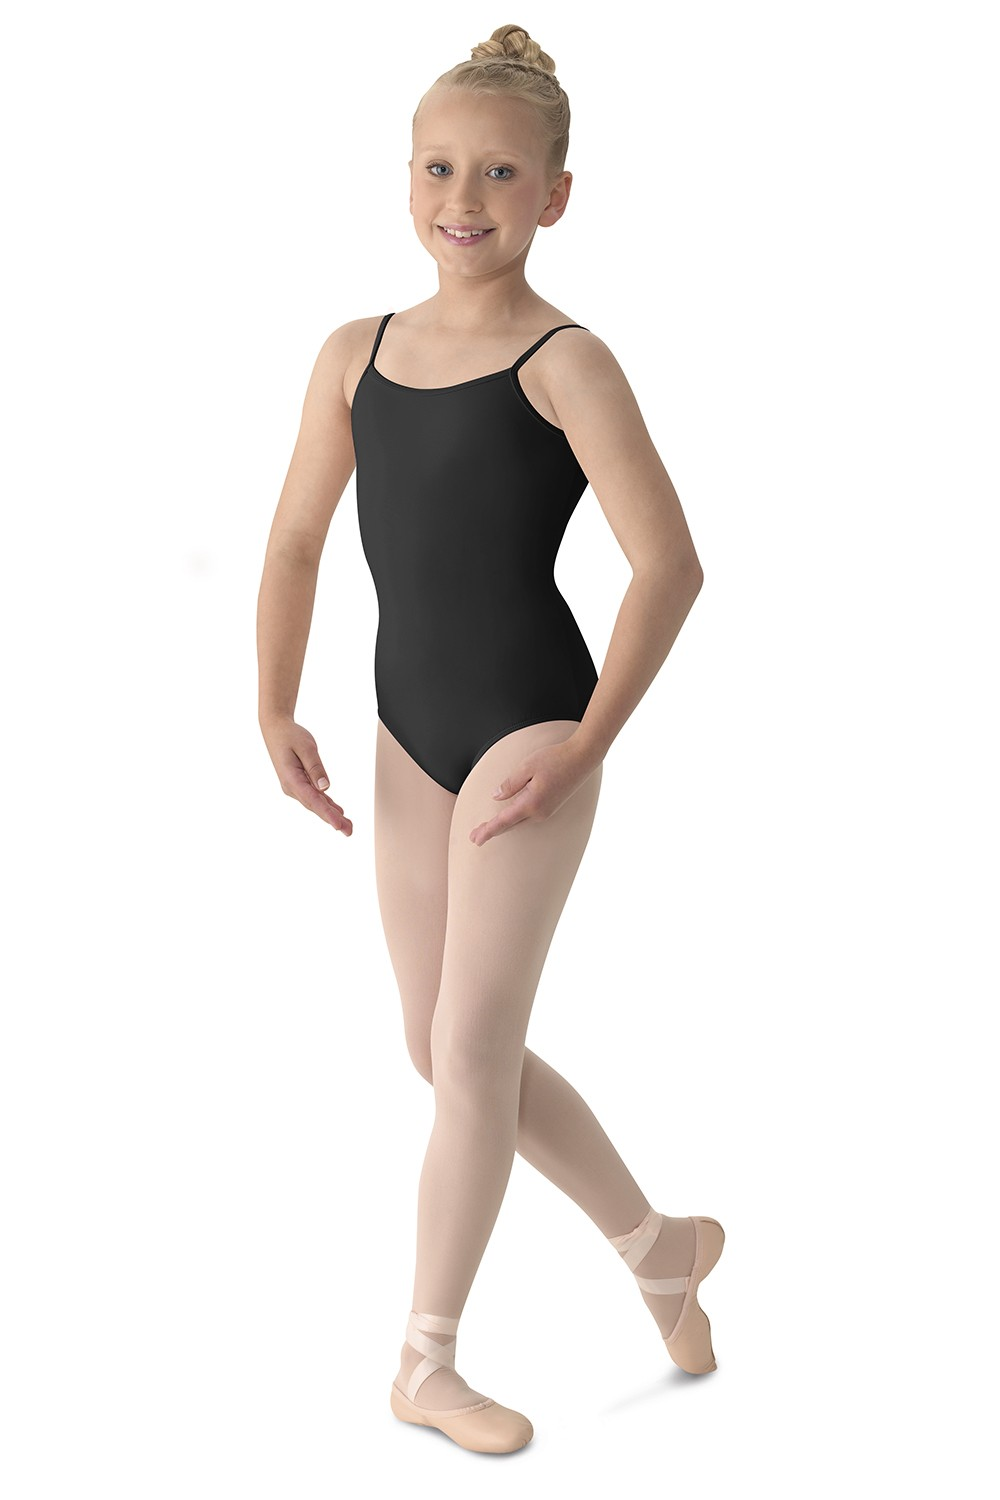 Klassisches Camisole Trikot Children's Dance Leotards